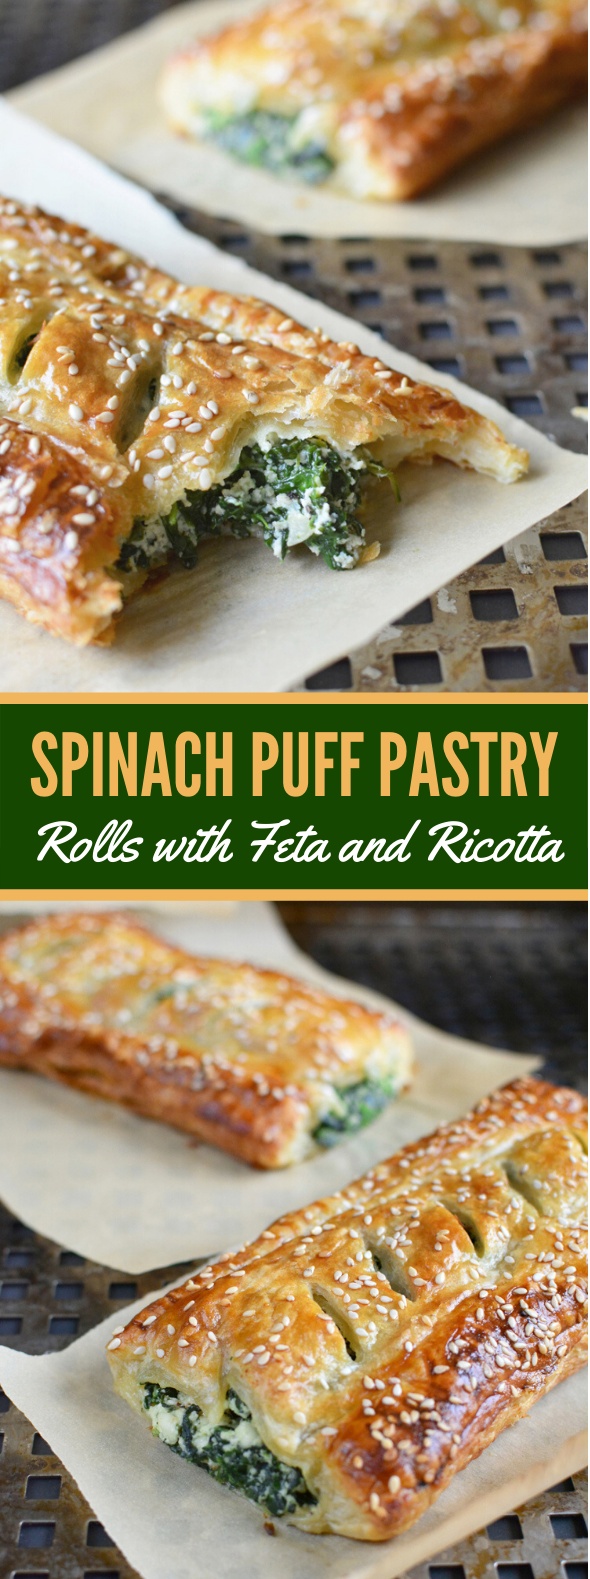 SPINACH PUFF PASTRY ROLLS WITH FETA & RICOTTA #vegetarian #appetizers